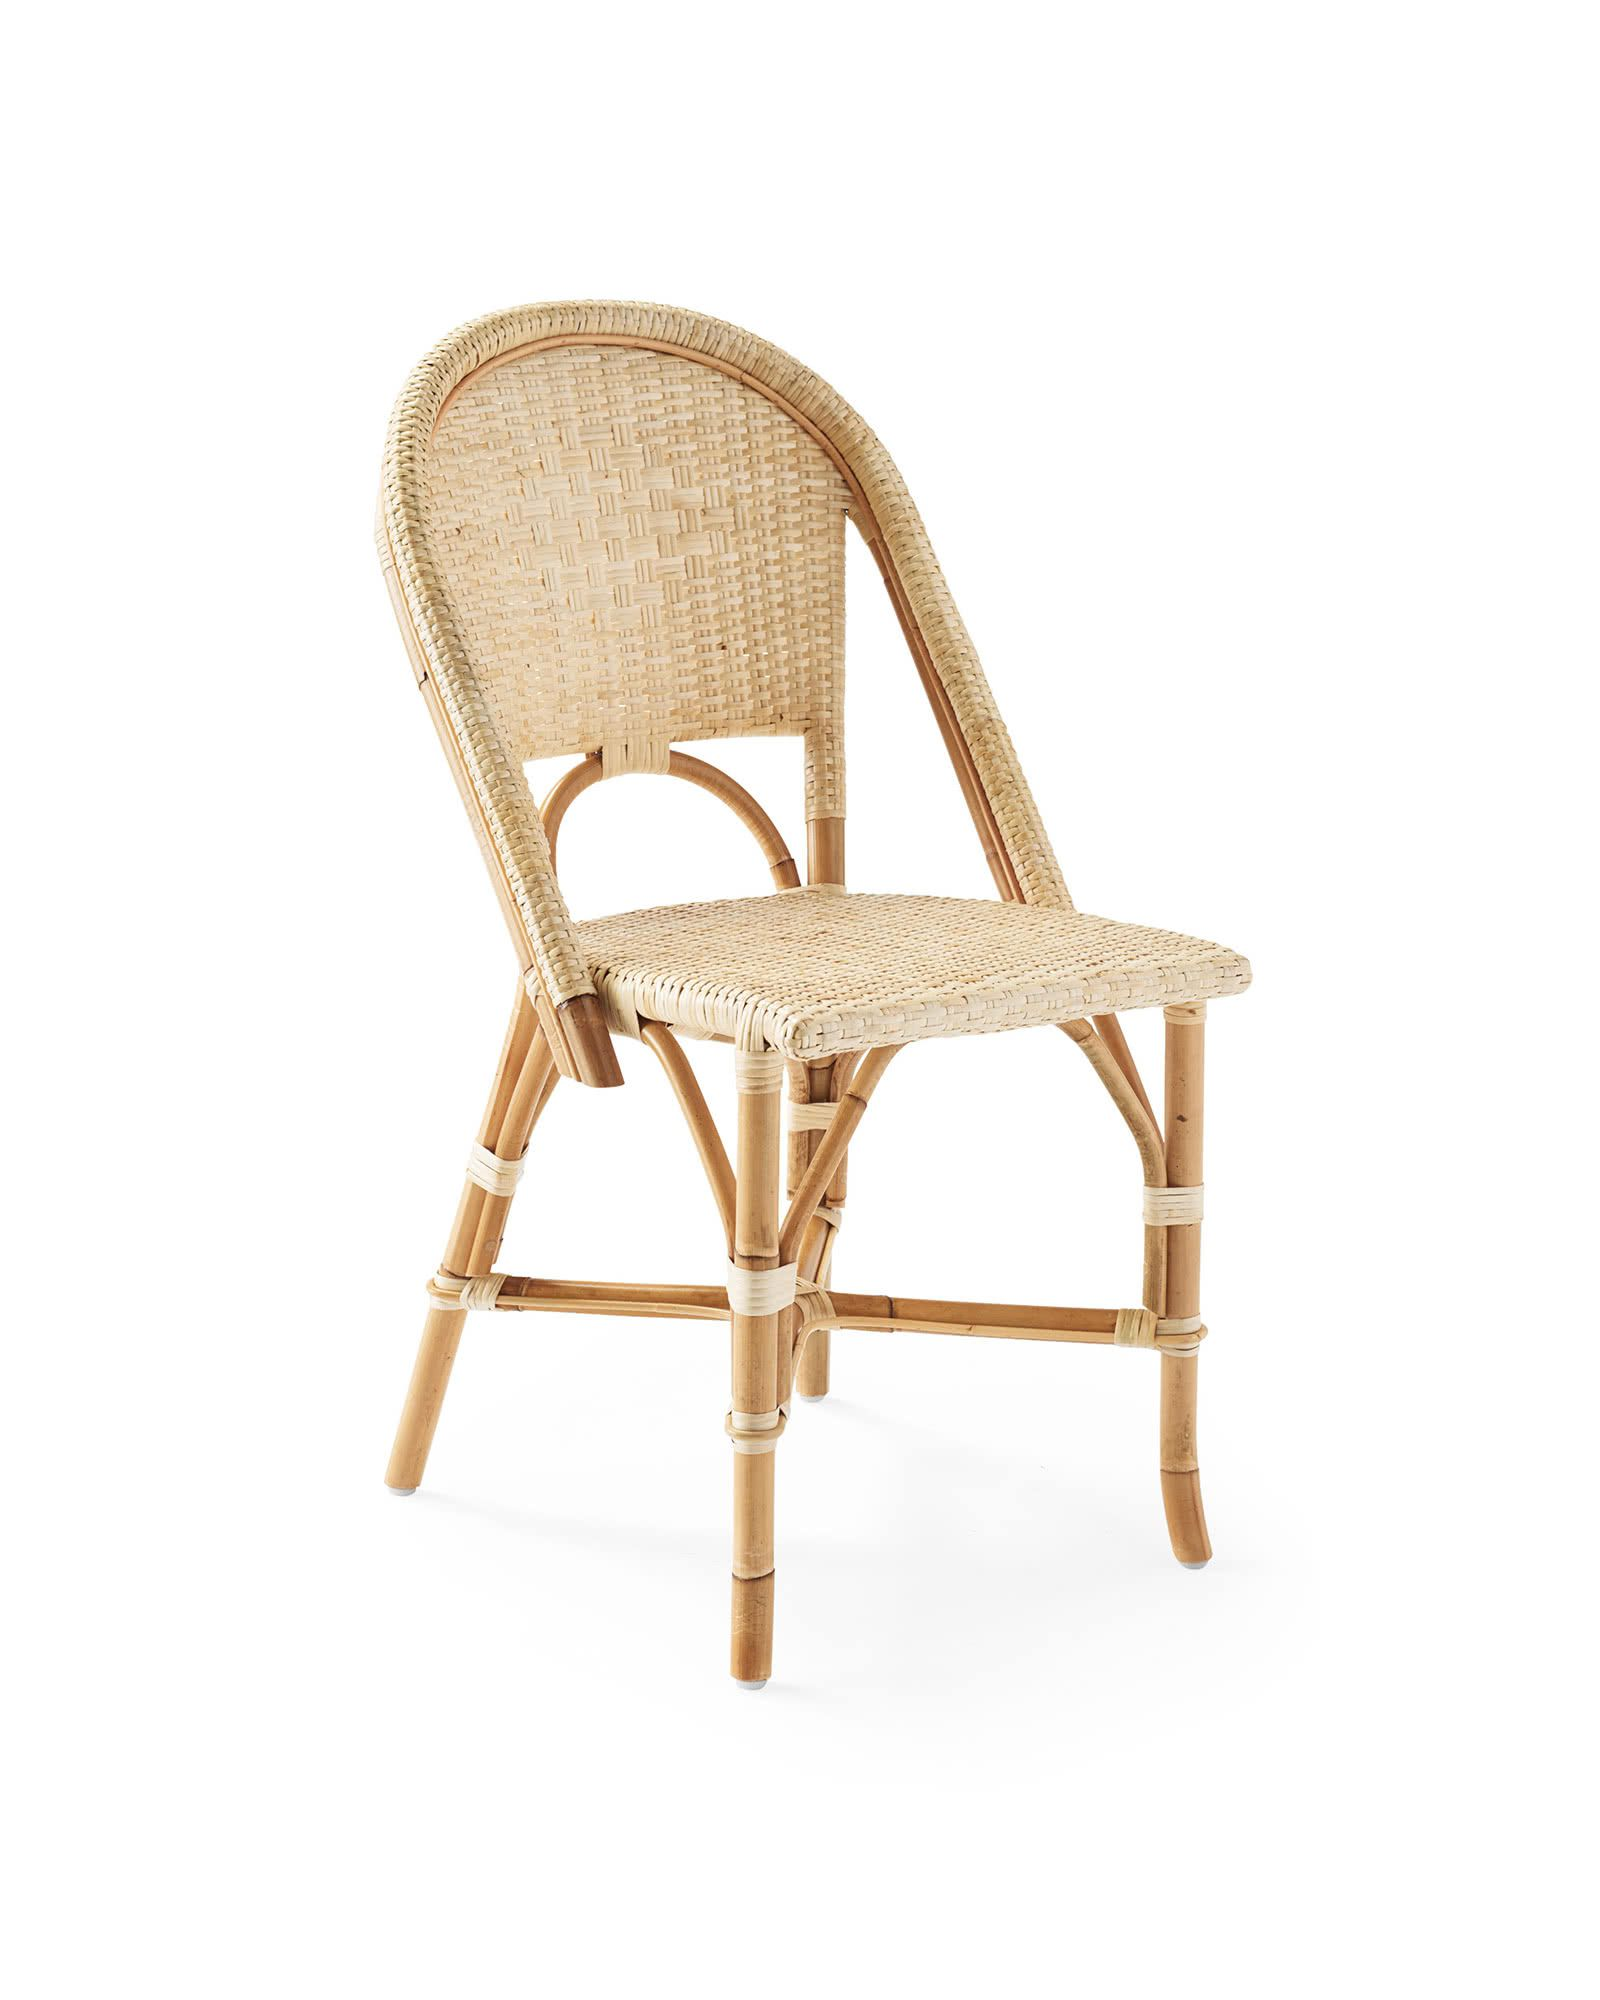 Serena & Lily Sunwashed Riviera Dining Chair